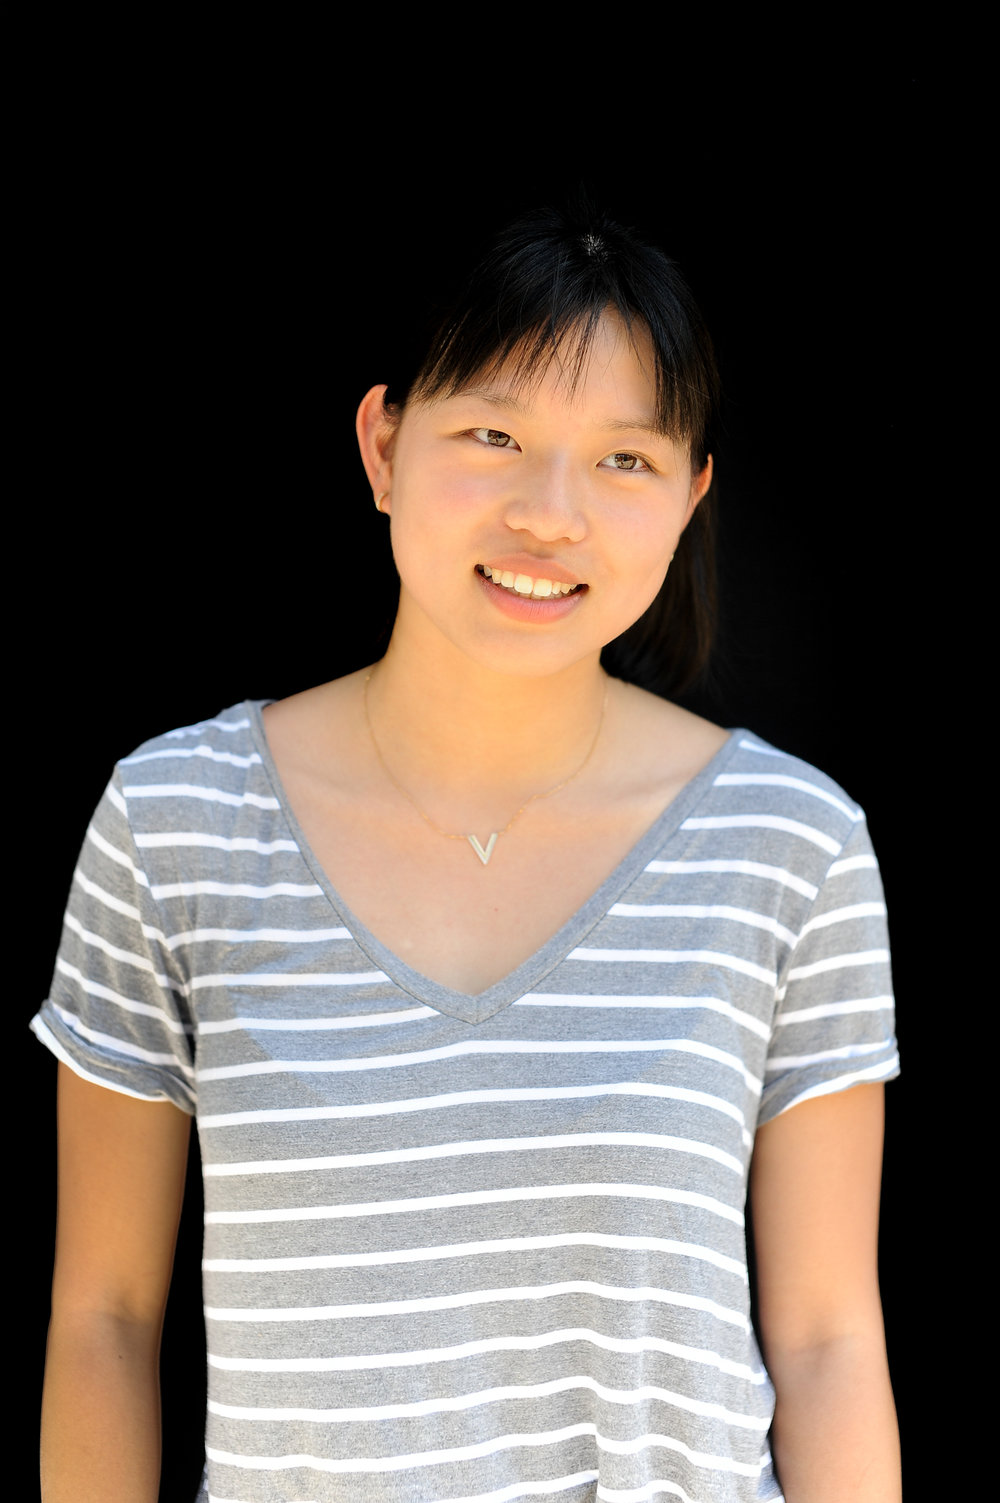 Name: Sisi Yu